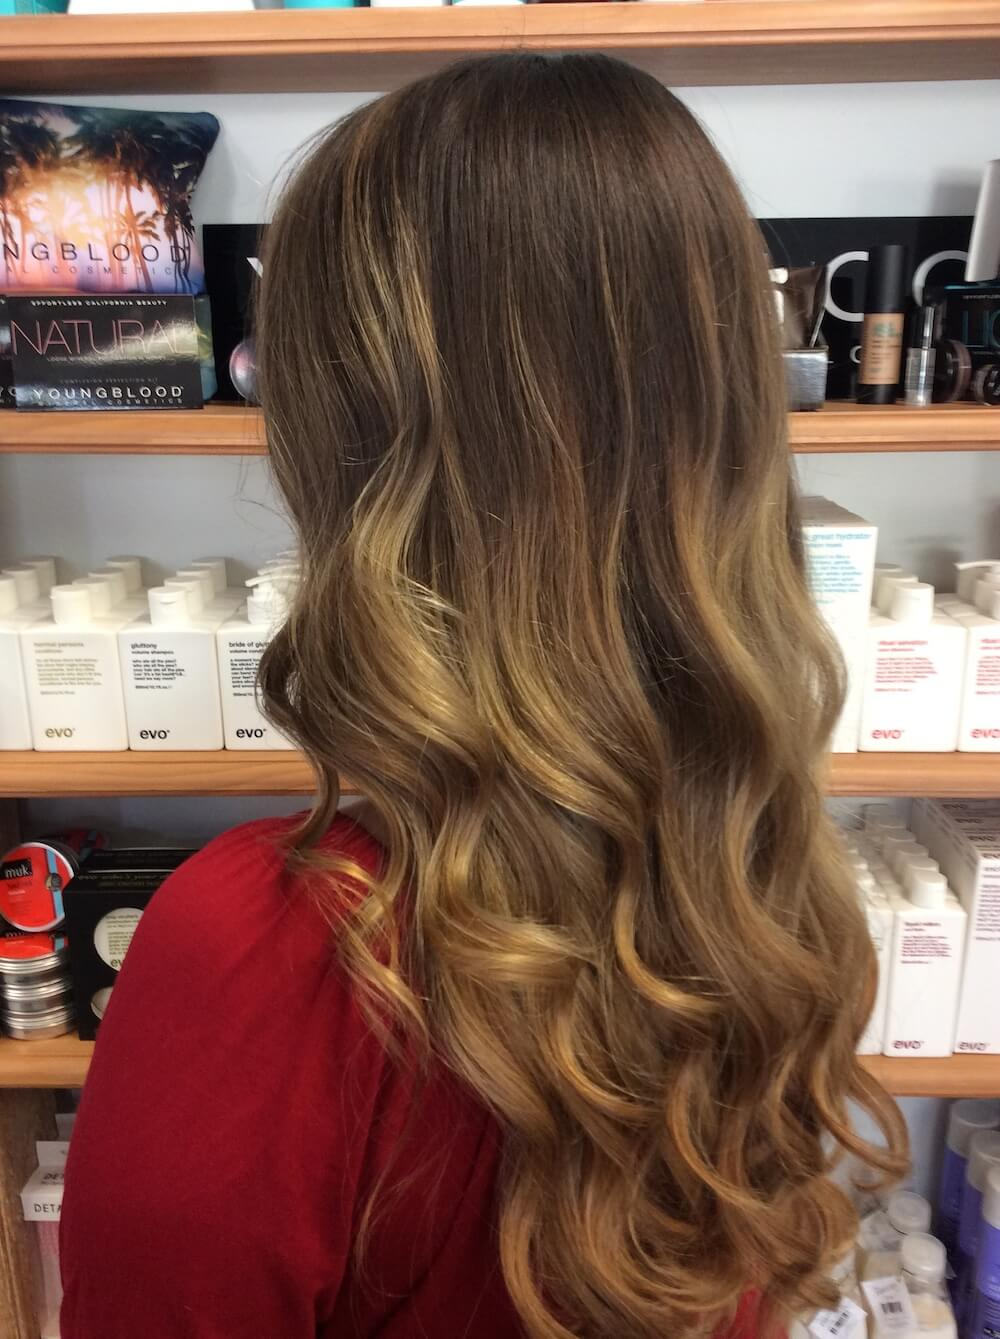 Blonde balayage - Kinks salon, Perth